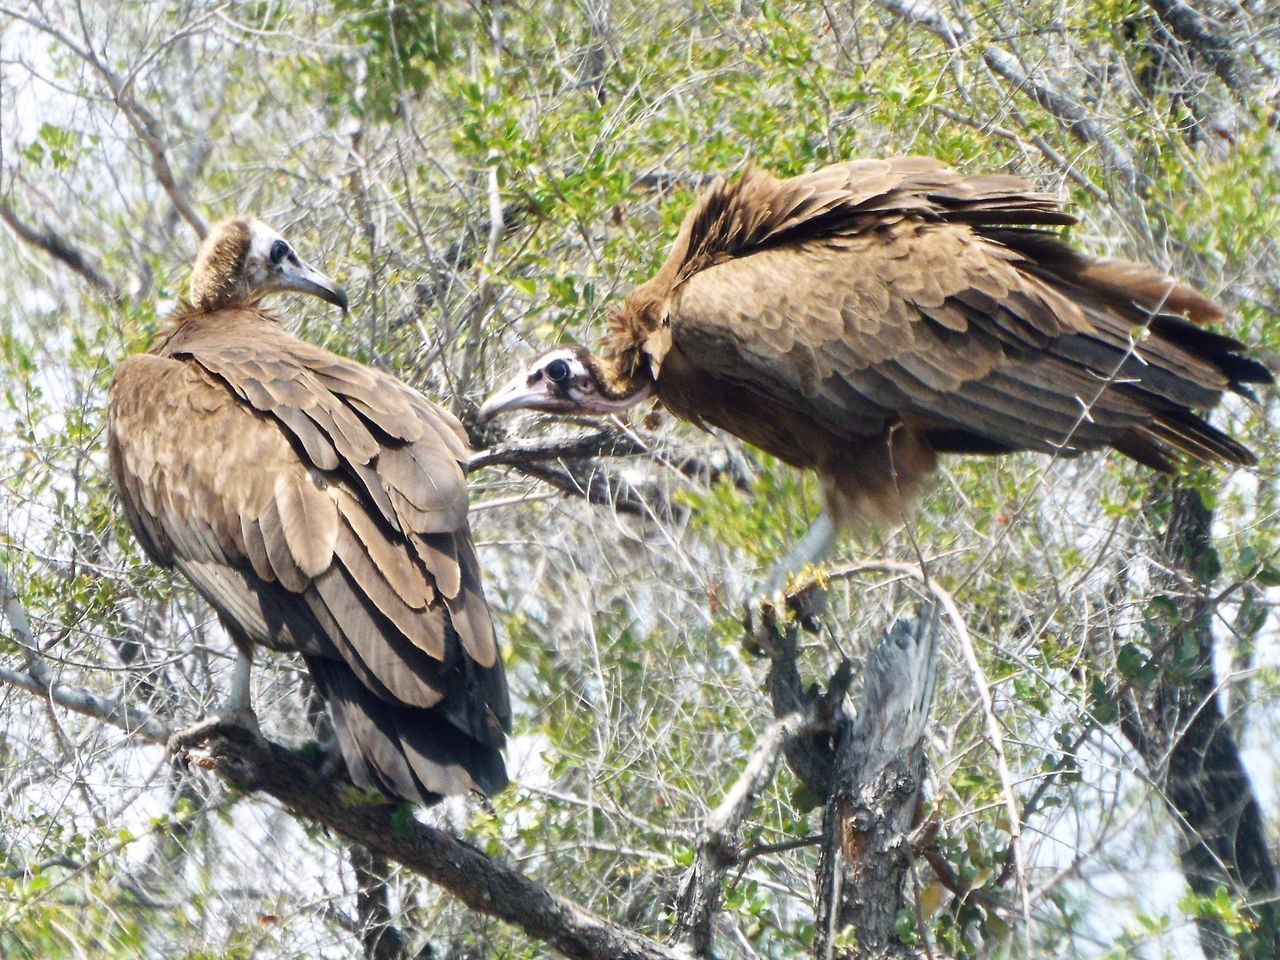 bird, animal wildlife, animals in the wild, animal, branch, animal themes, nature, tree, no people, perching, day, outdoors, vulture, bird of prey, full length, close-up, beauty in nature